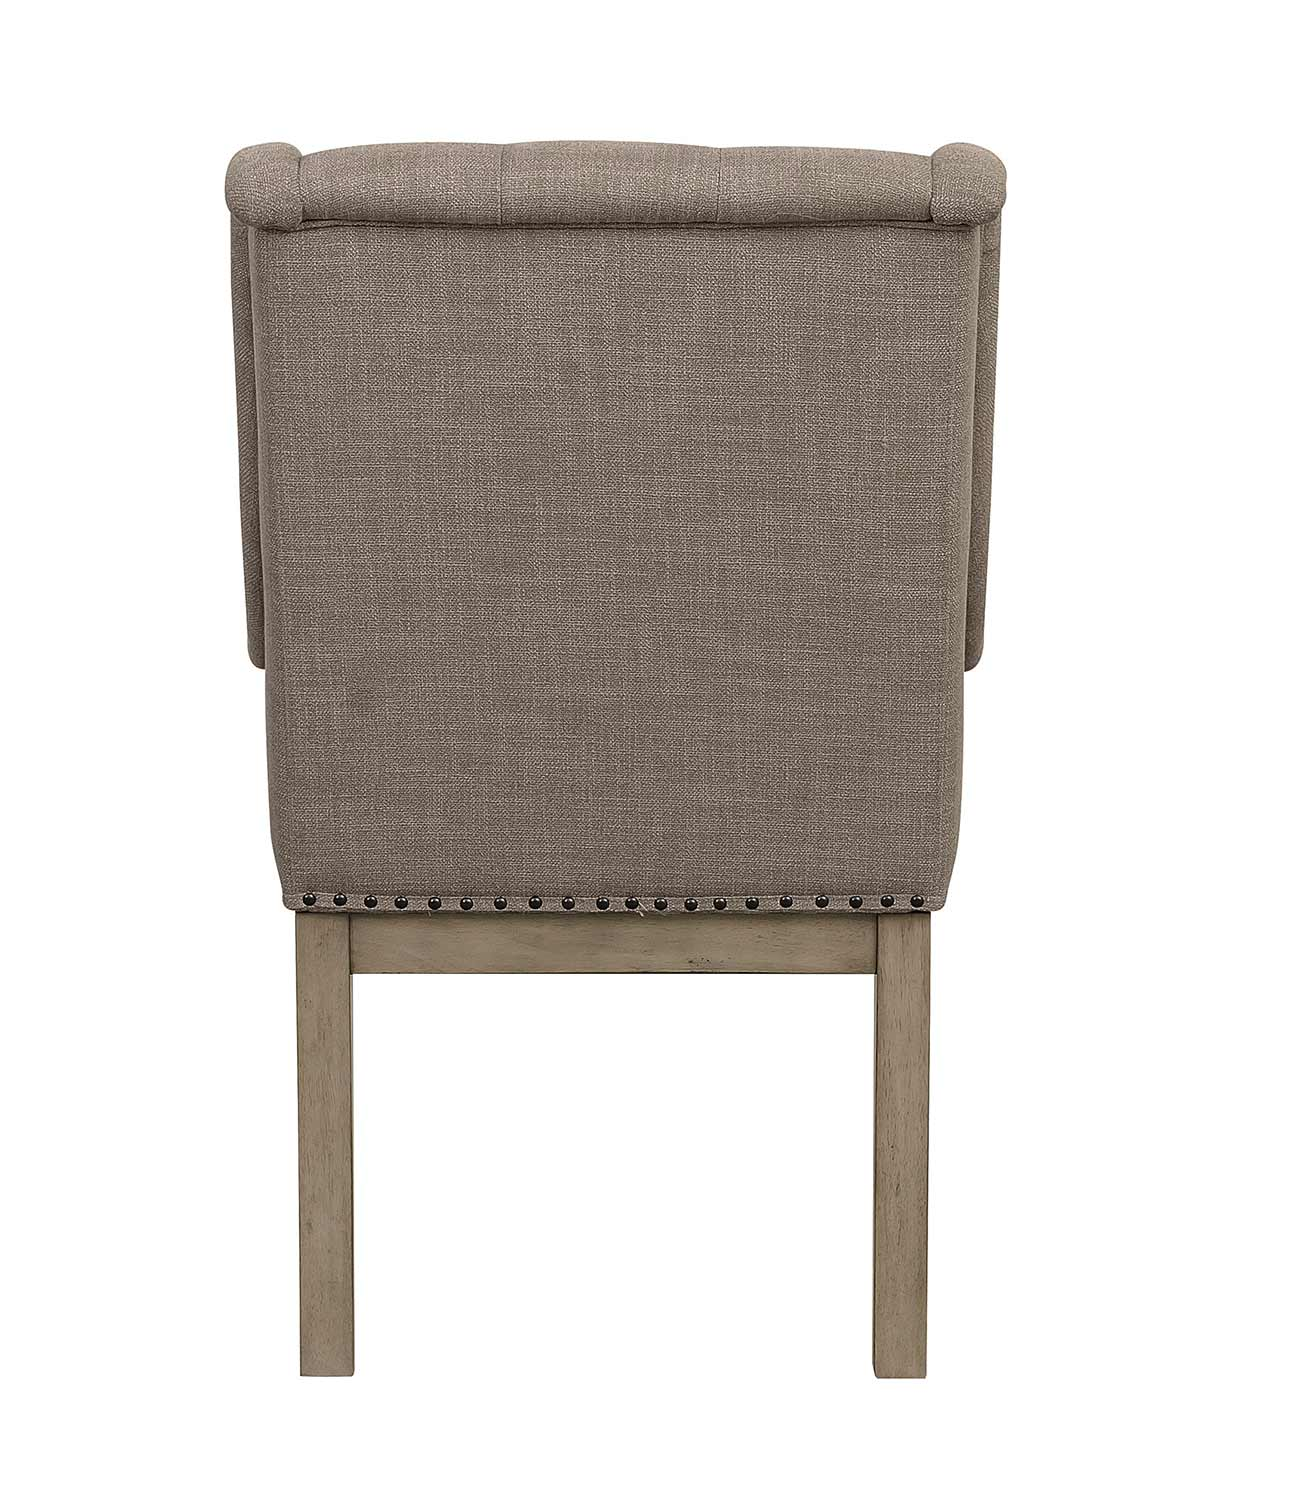 Homelegance Vermillion Arm Chair - Bisque